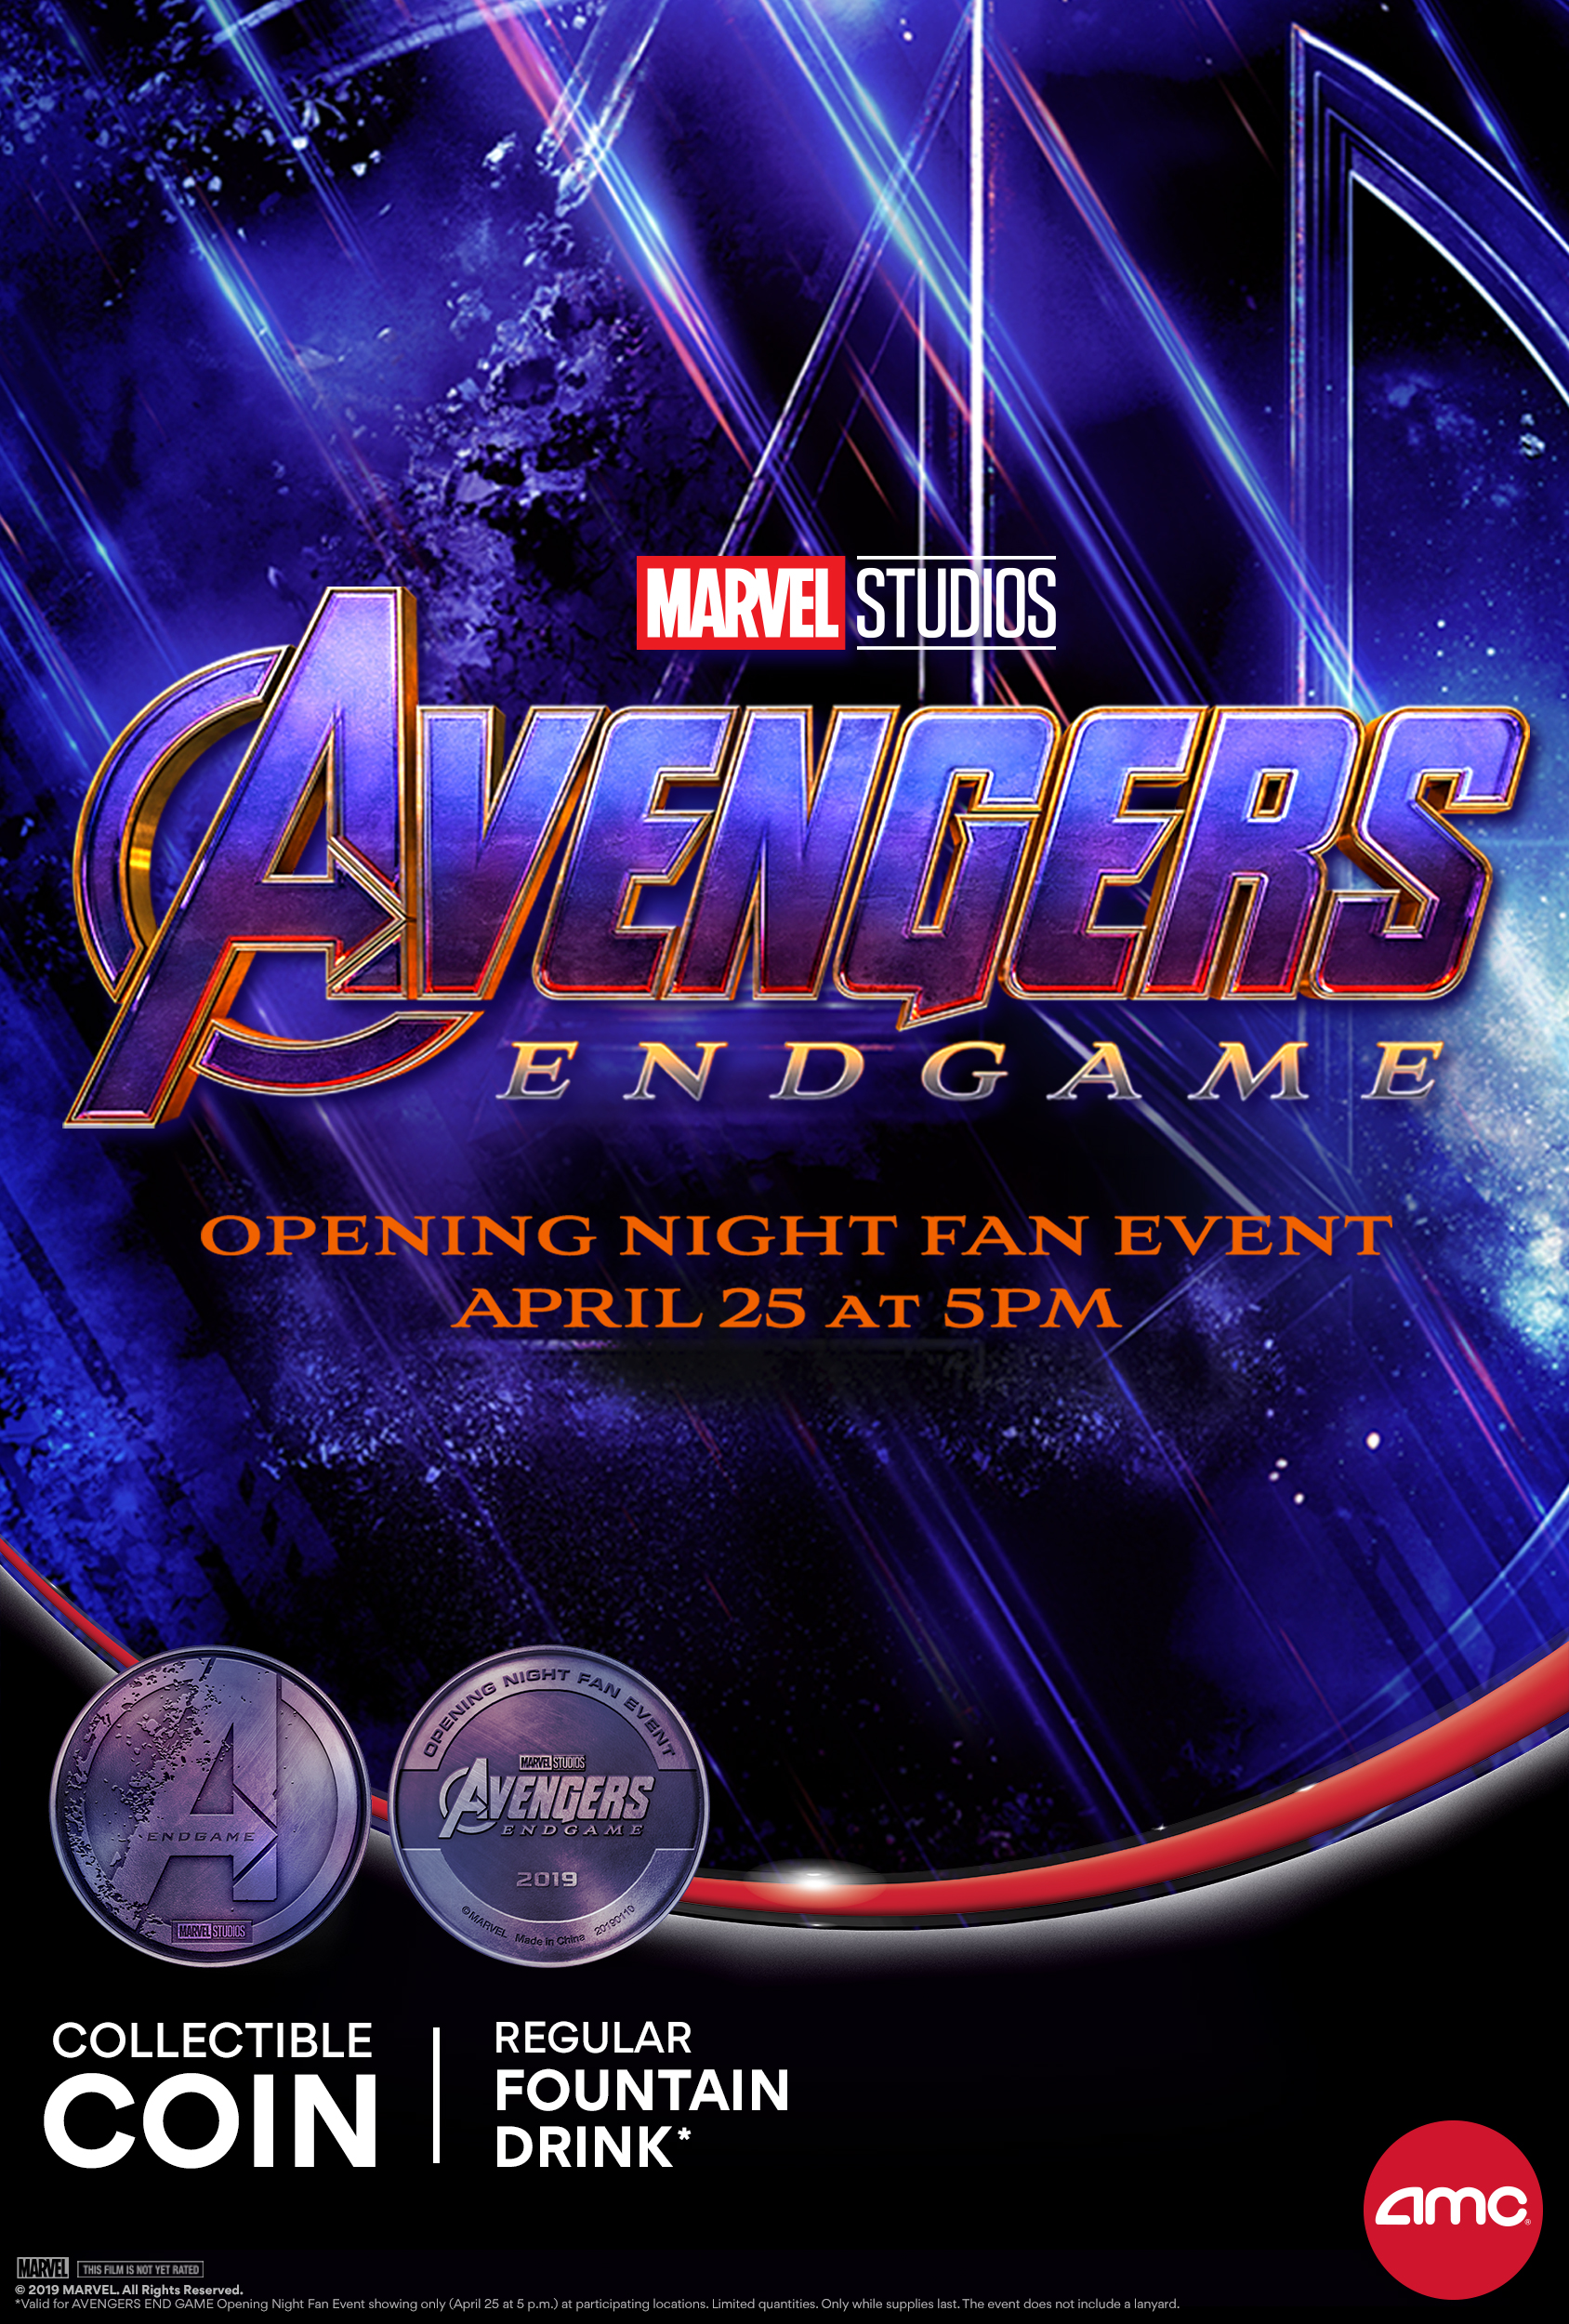 opening night fan event avengers endgame at an amc - HD 1688×2500